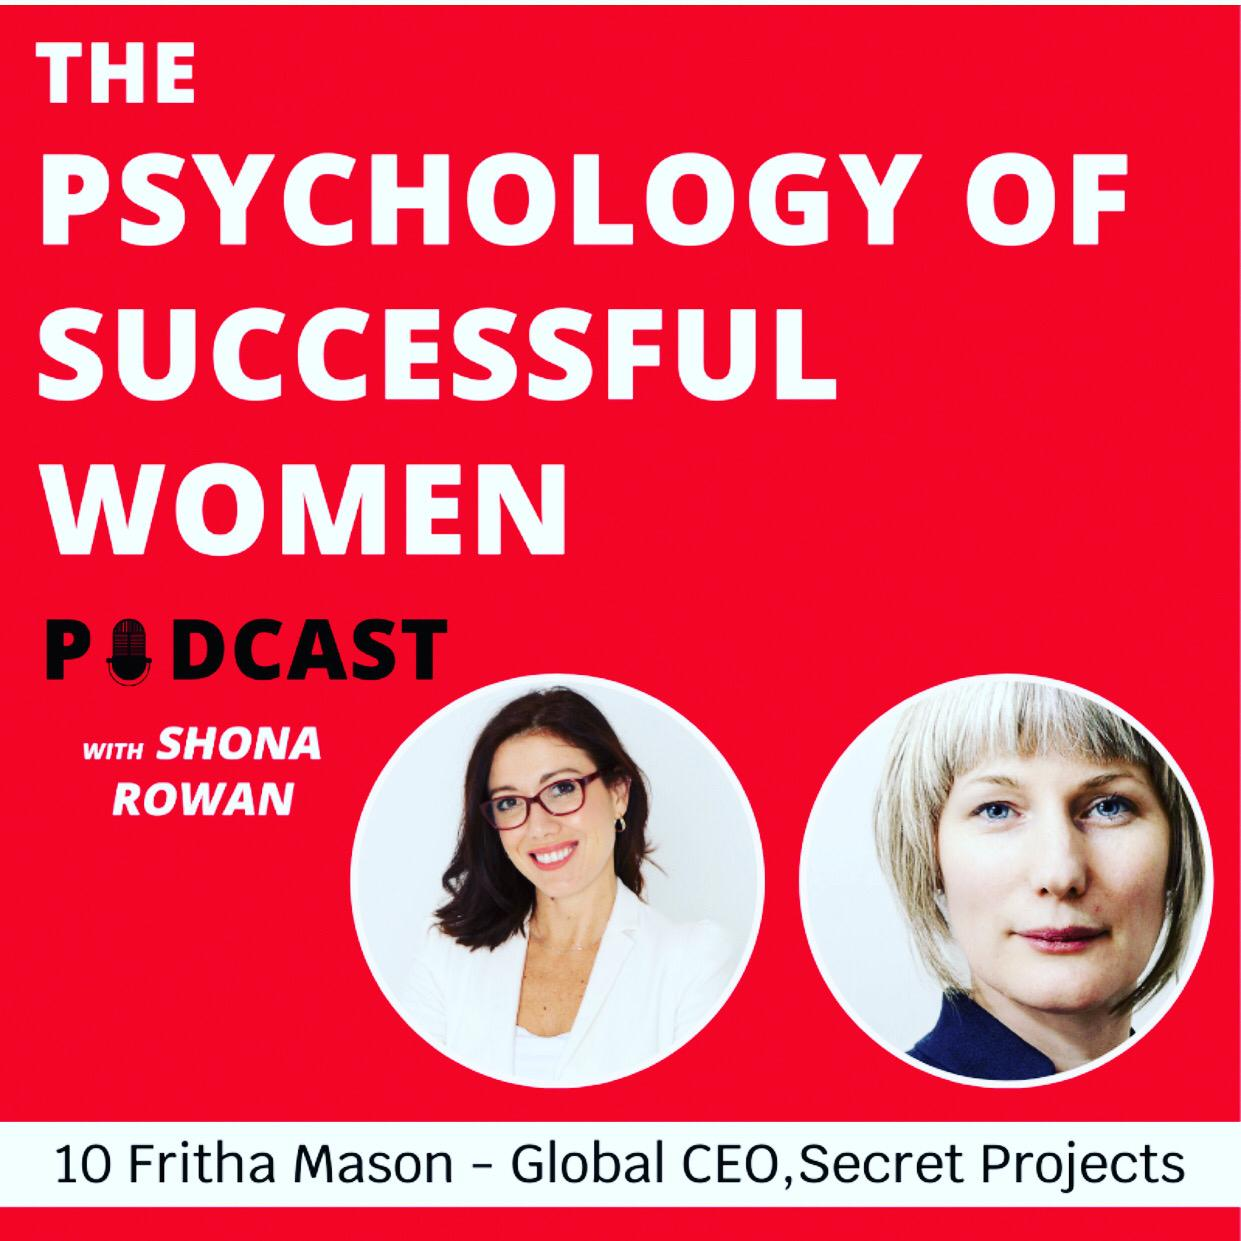 Our CEO takes part in 'The Psychology of Successful Women Podcast'. Listen and be inspired!